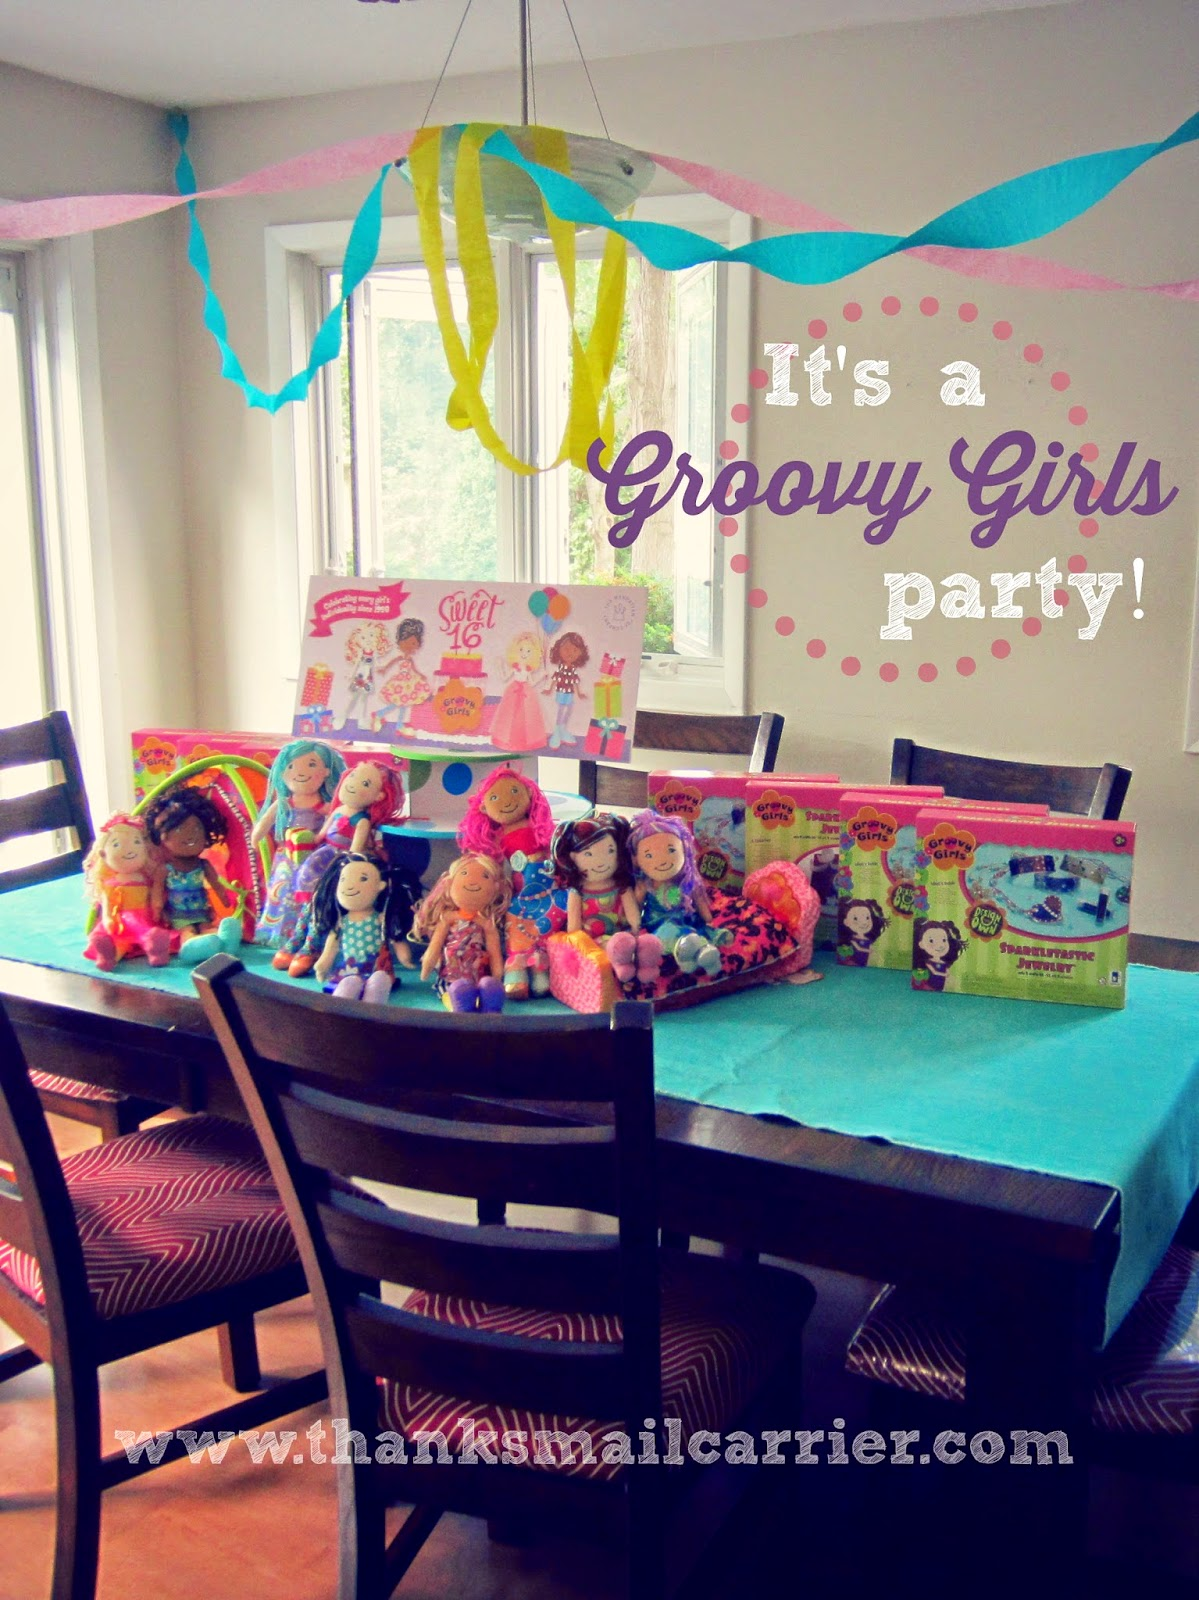 Groovy Girls party setup